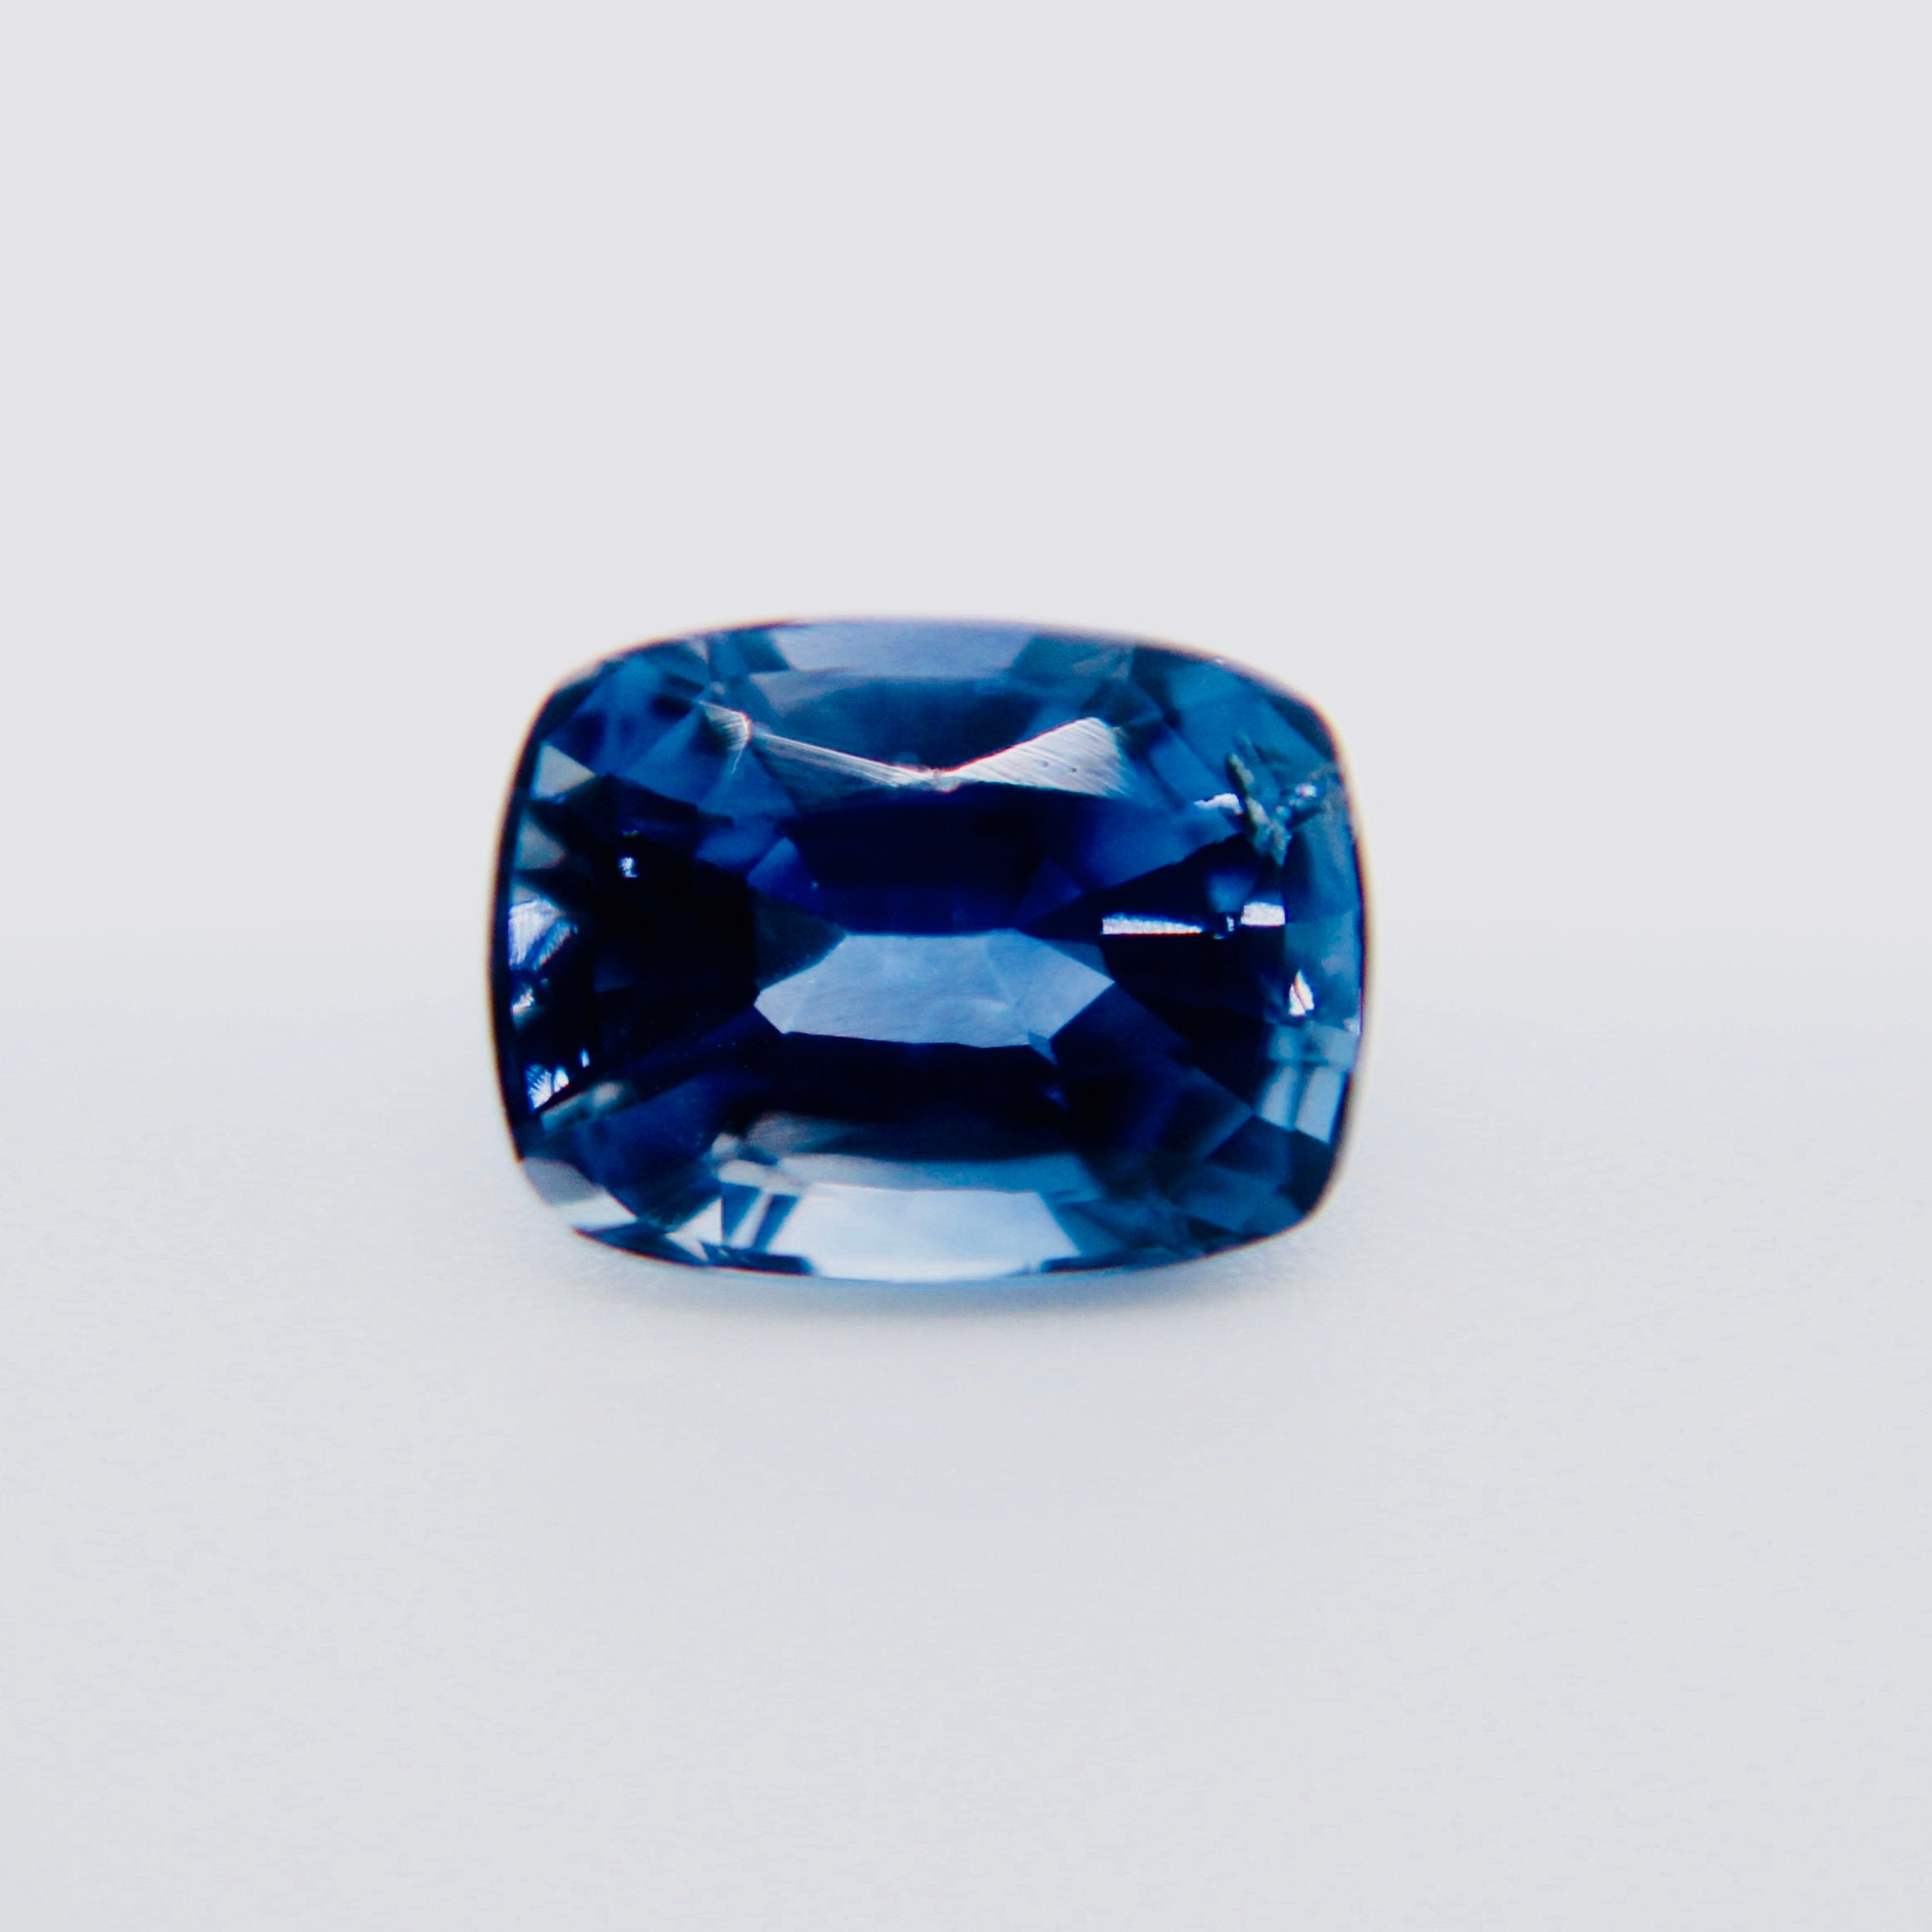 color untreated cuts ctw c sapphire ring n p diamond fancy